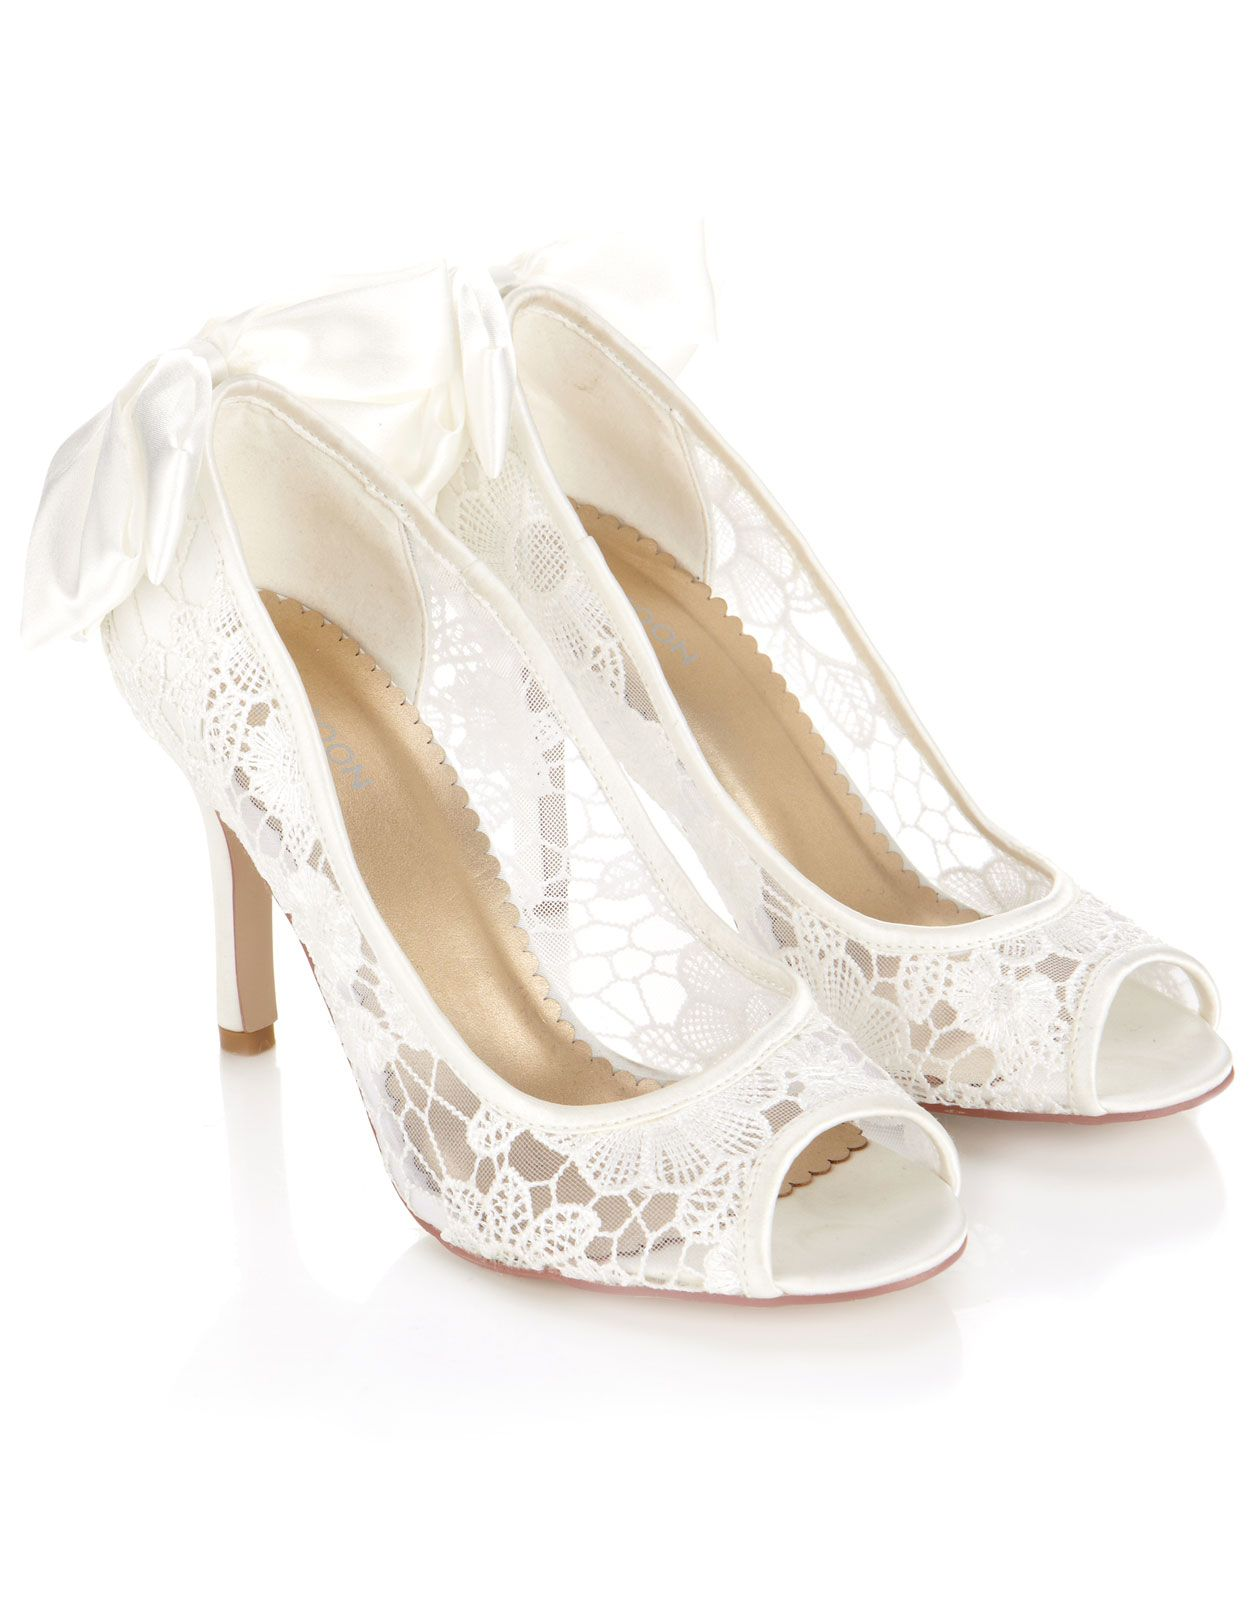 lilliana vintage bow peeptoe in ivory from monsoon i have just bought these soooooo